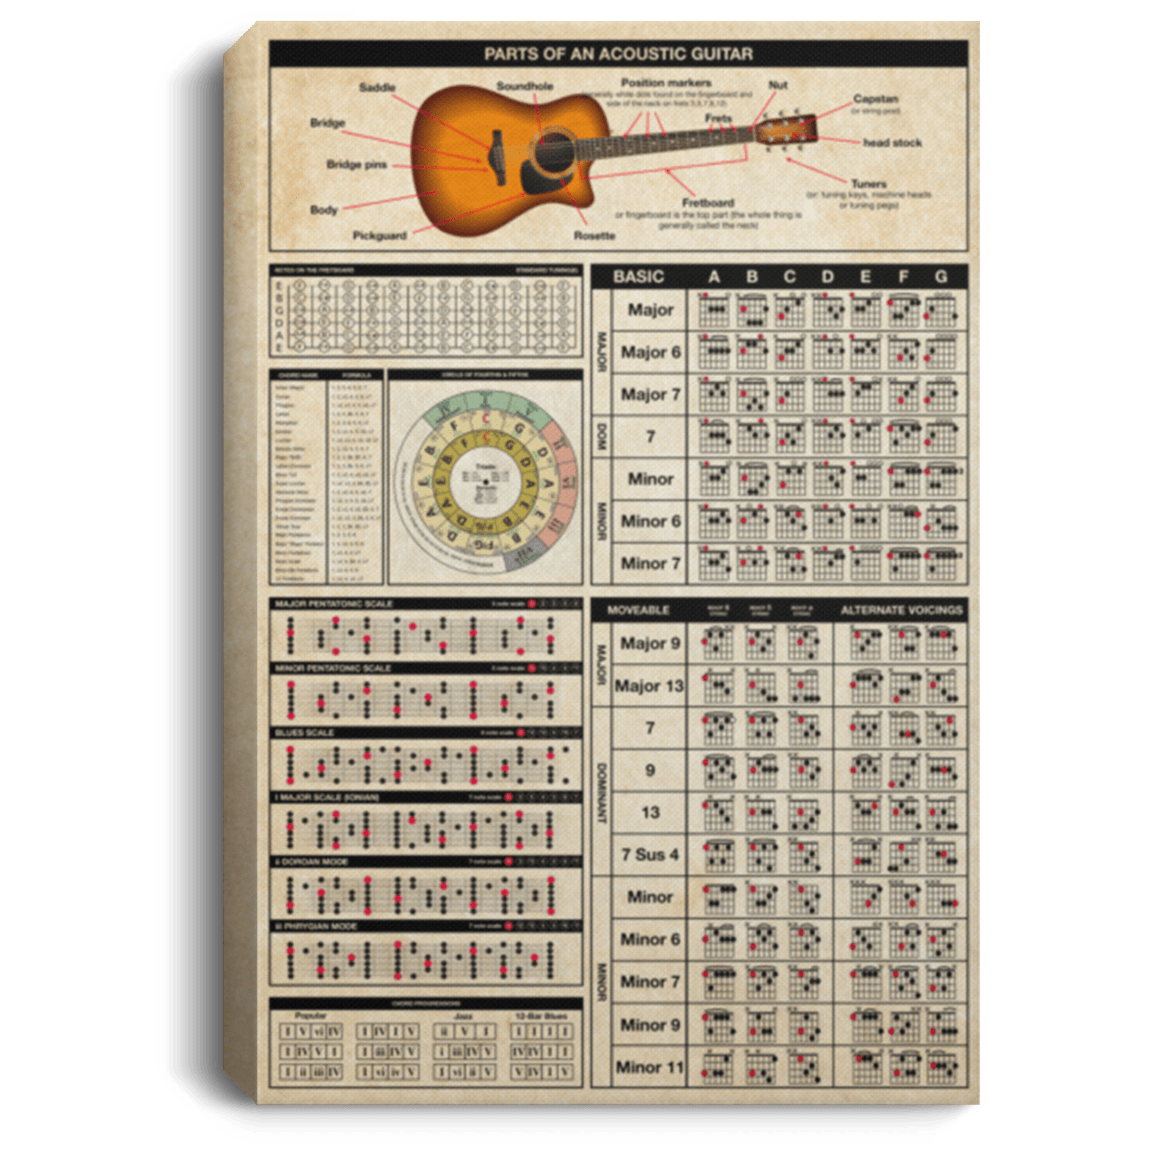 guitar anatomy knowledge gallery wrapped framed canvas prints unframed poster home decor wall art